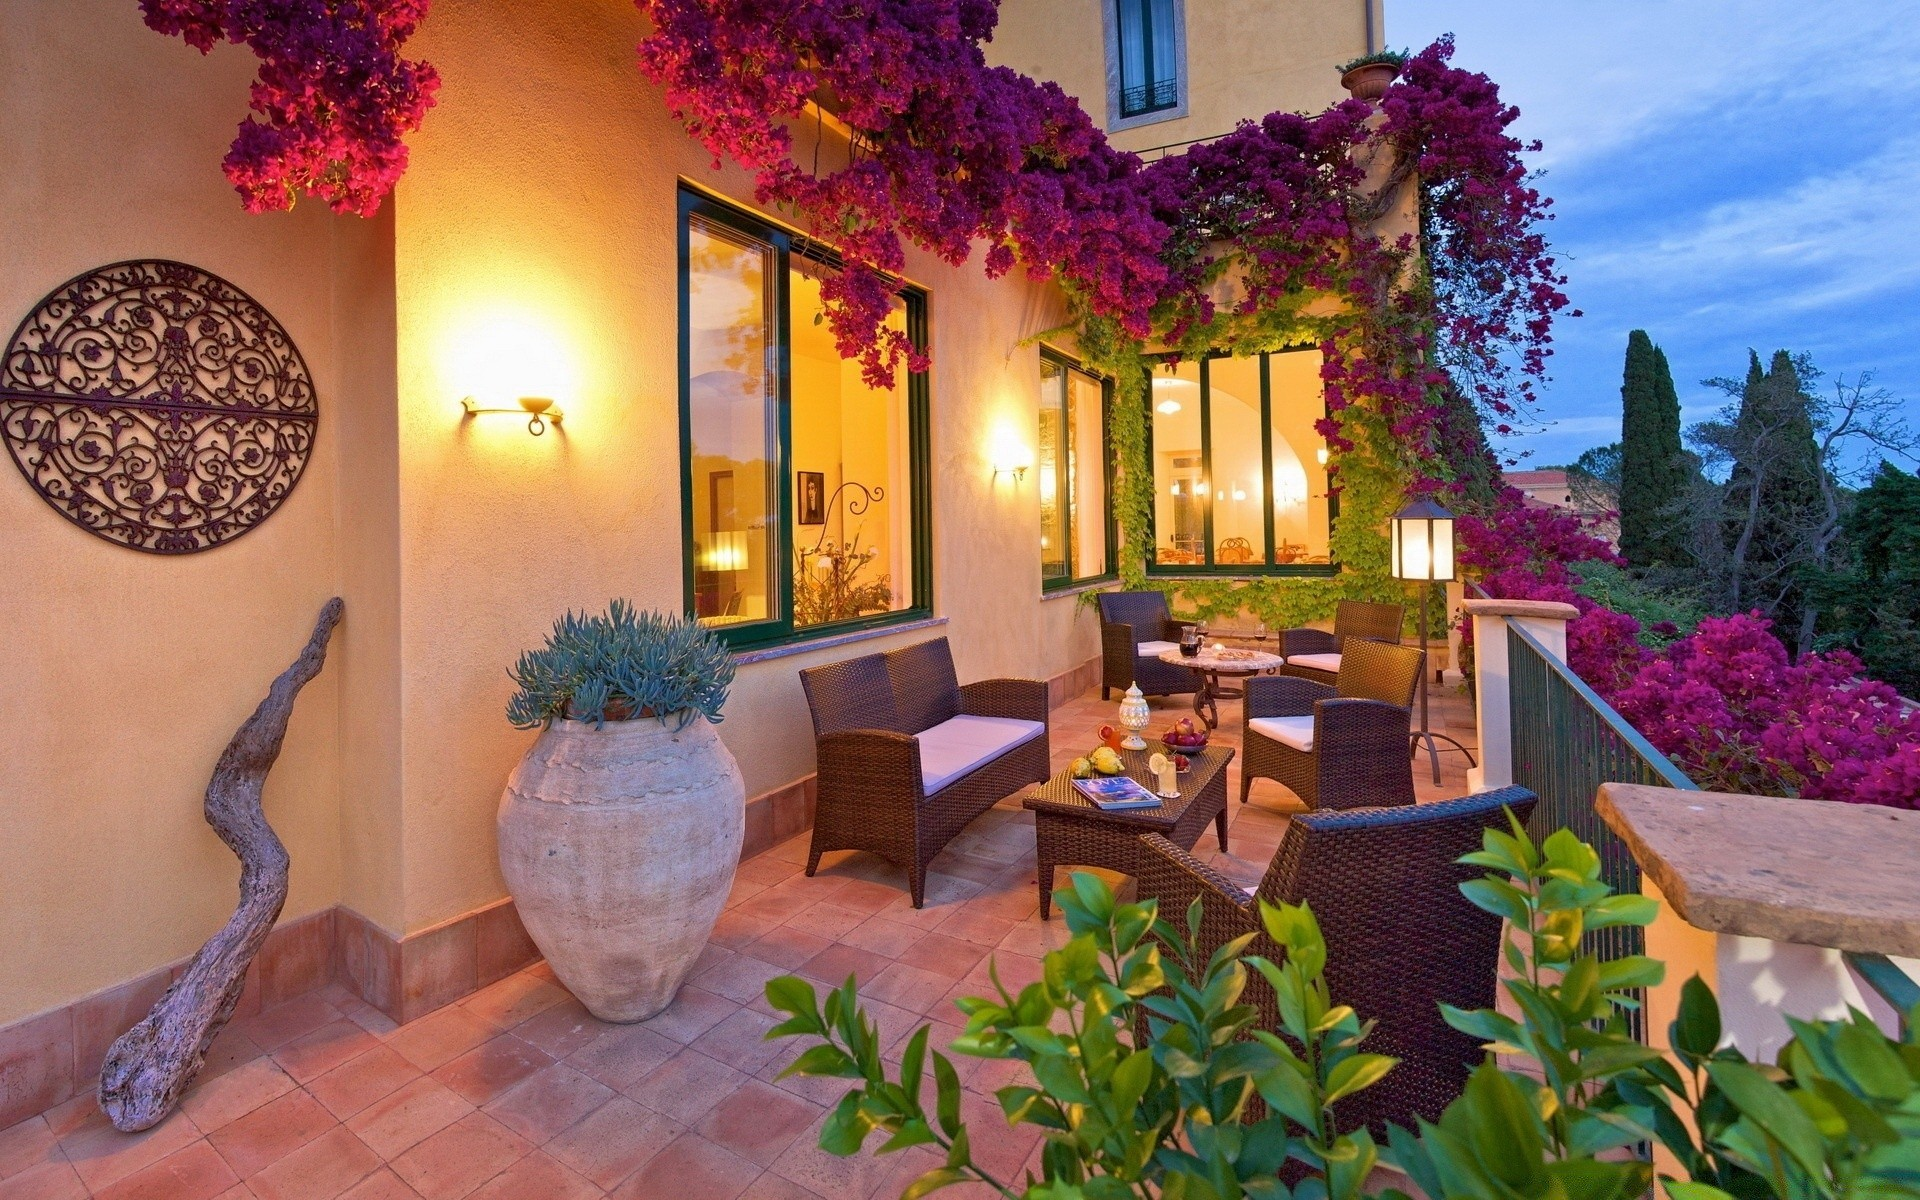 Buy an apartment in Taormina cheaply on the shore